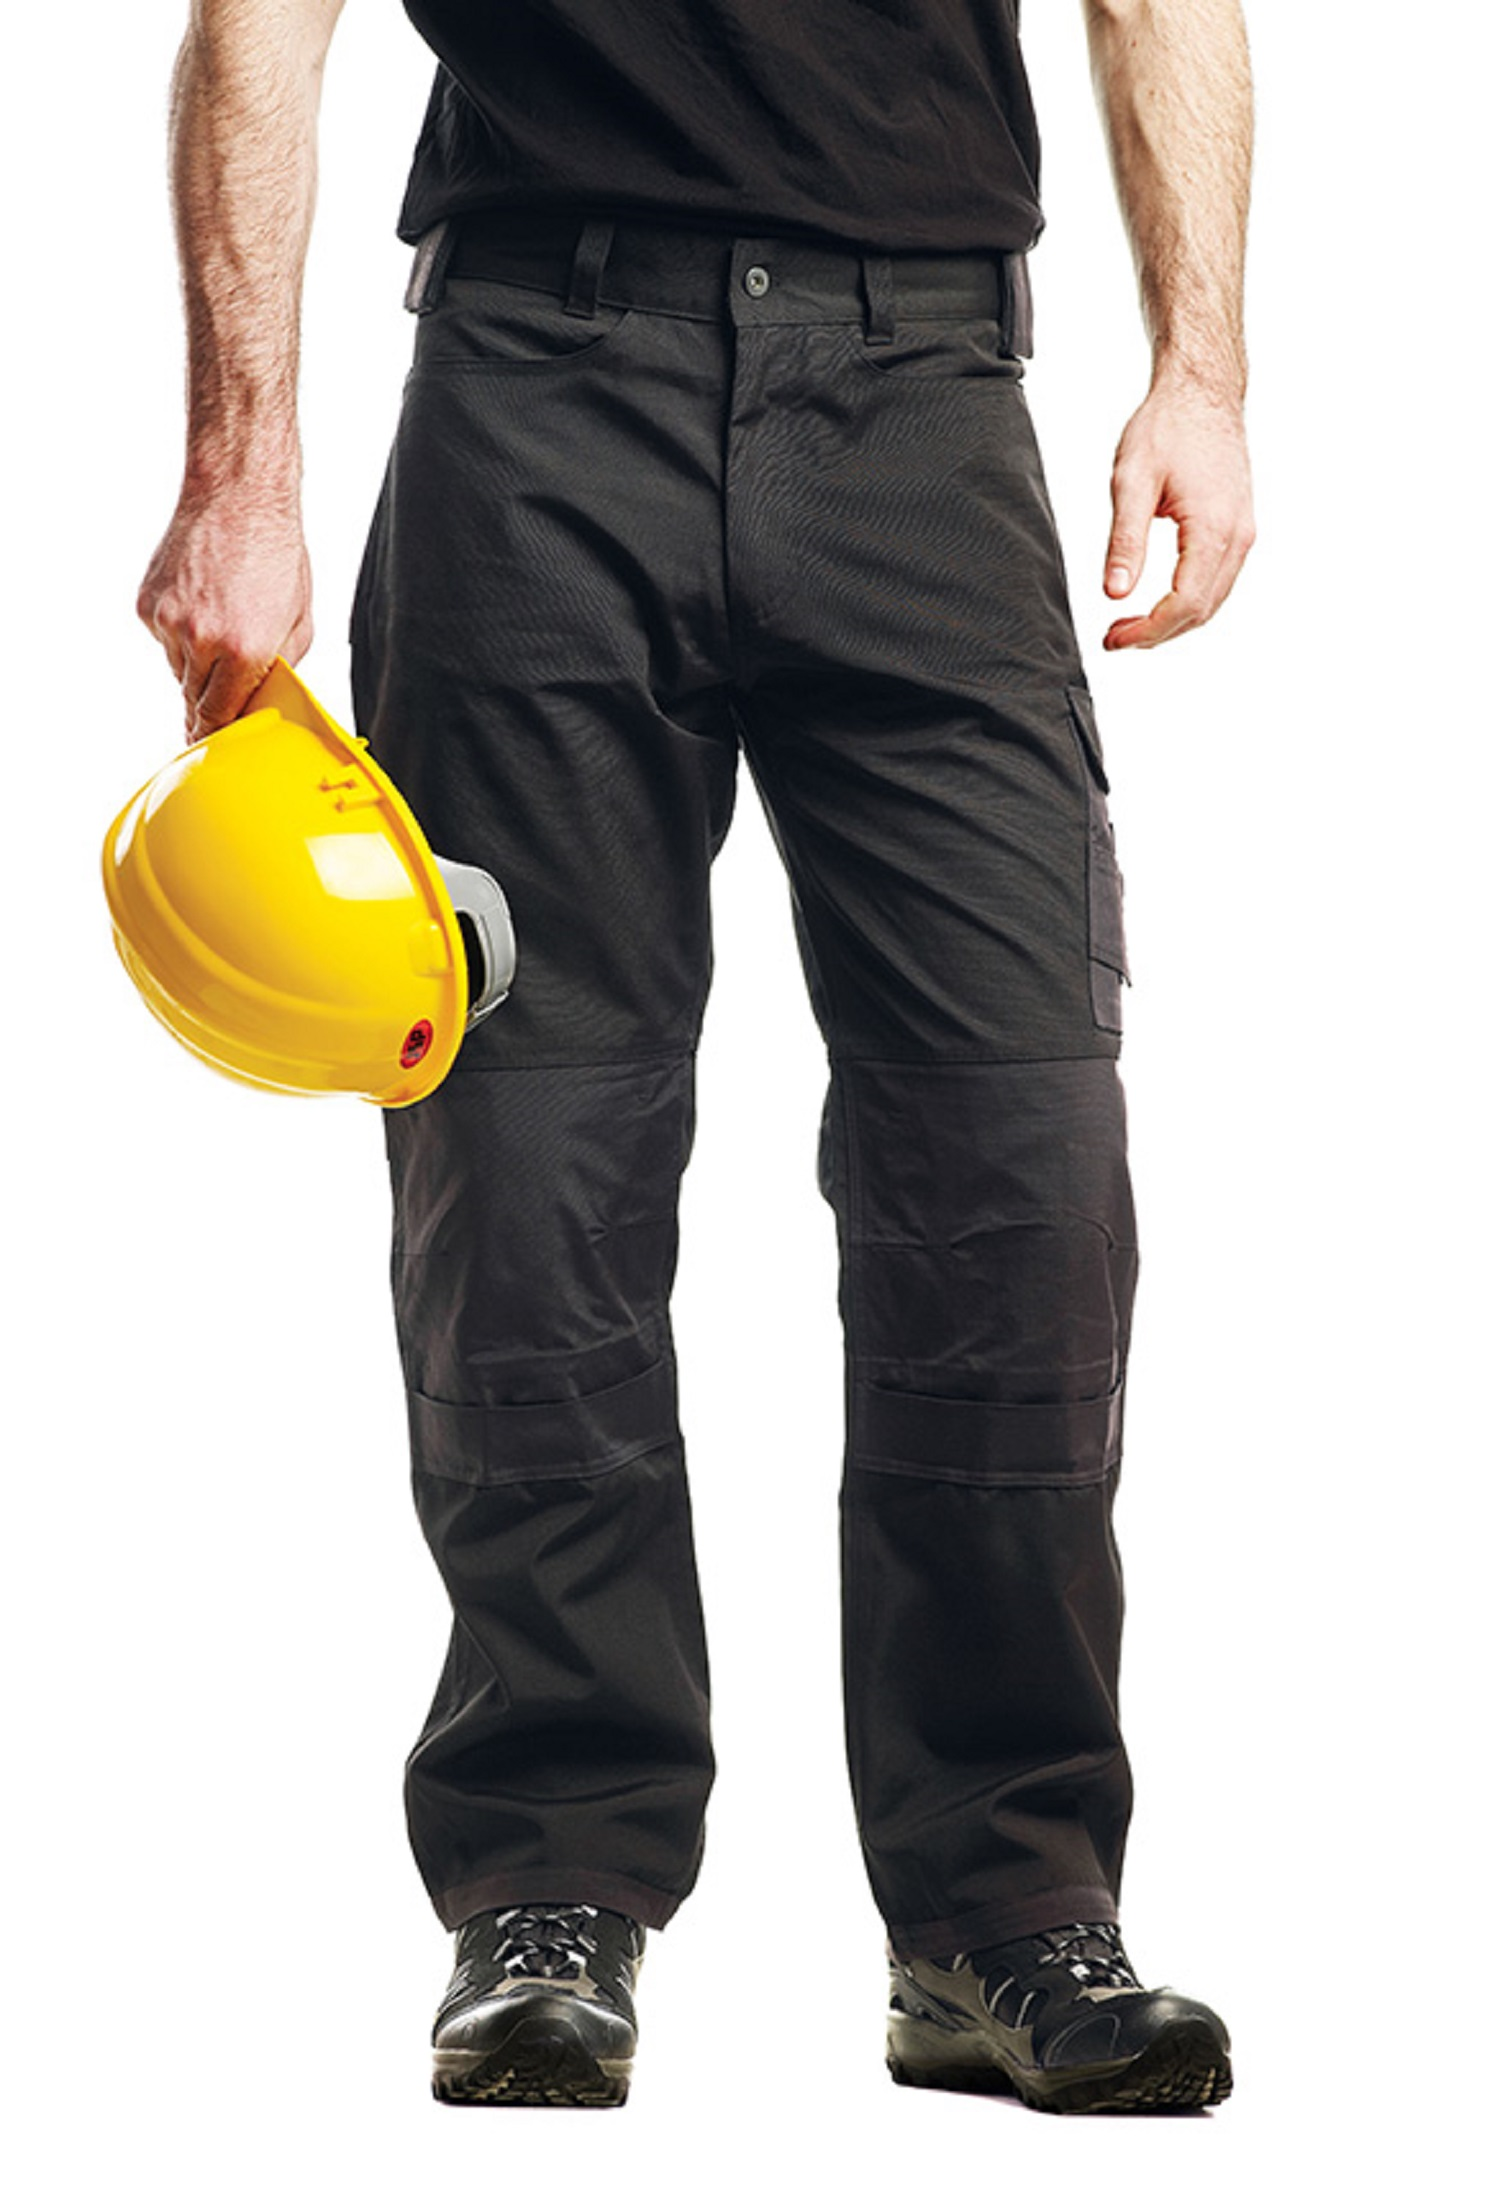 thumbnail 6 - 2 x Regatta Mens Premium Workwear Work Combat Cargo Trousers. Sizes up to 52""